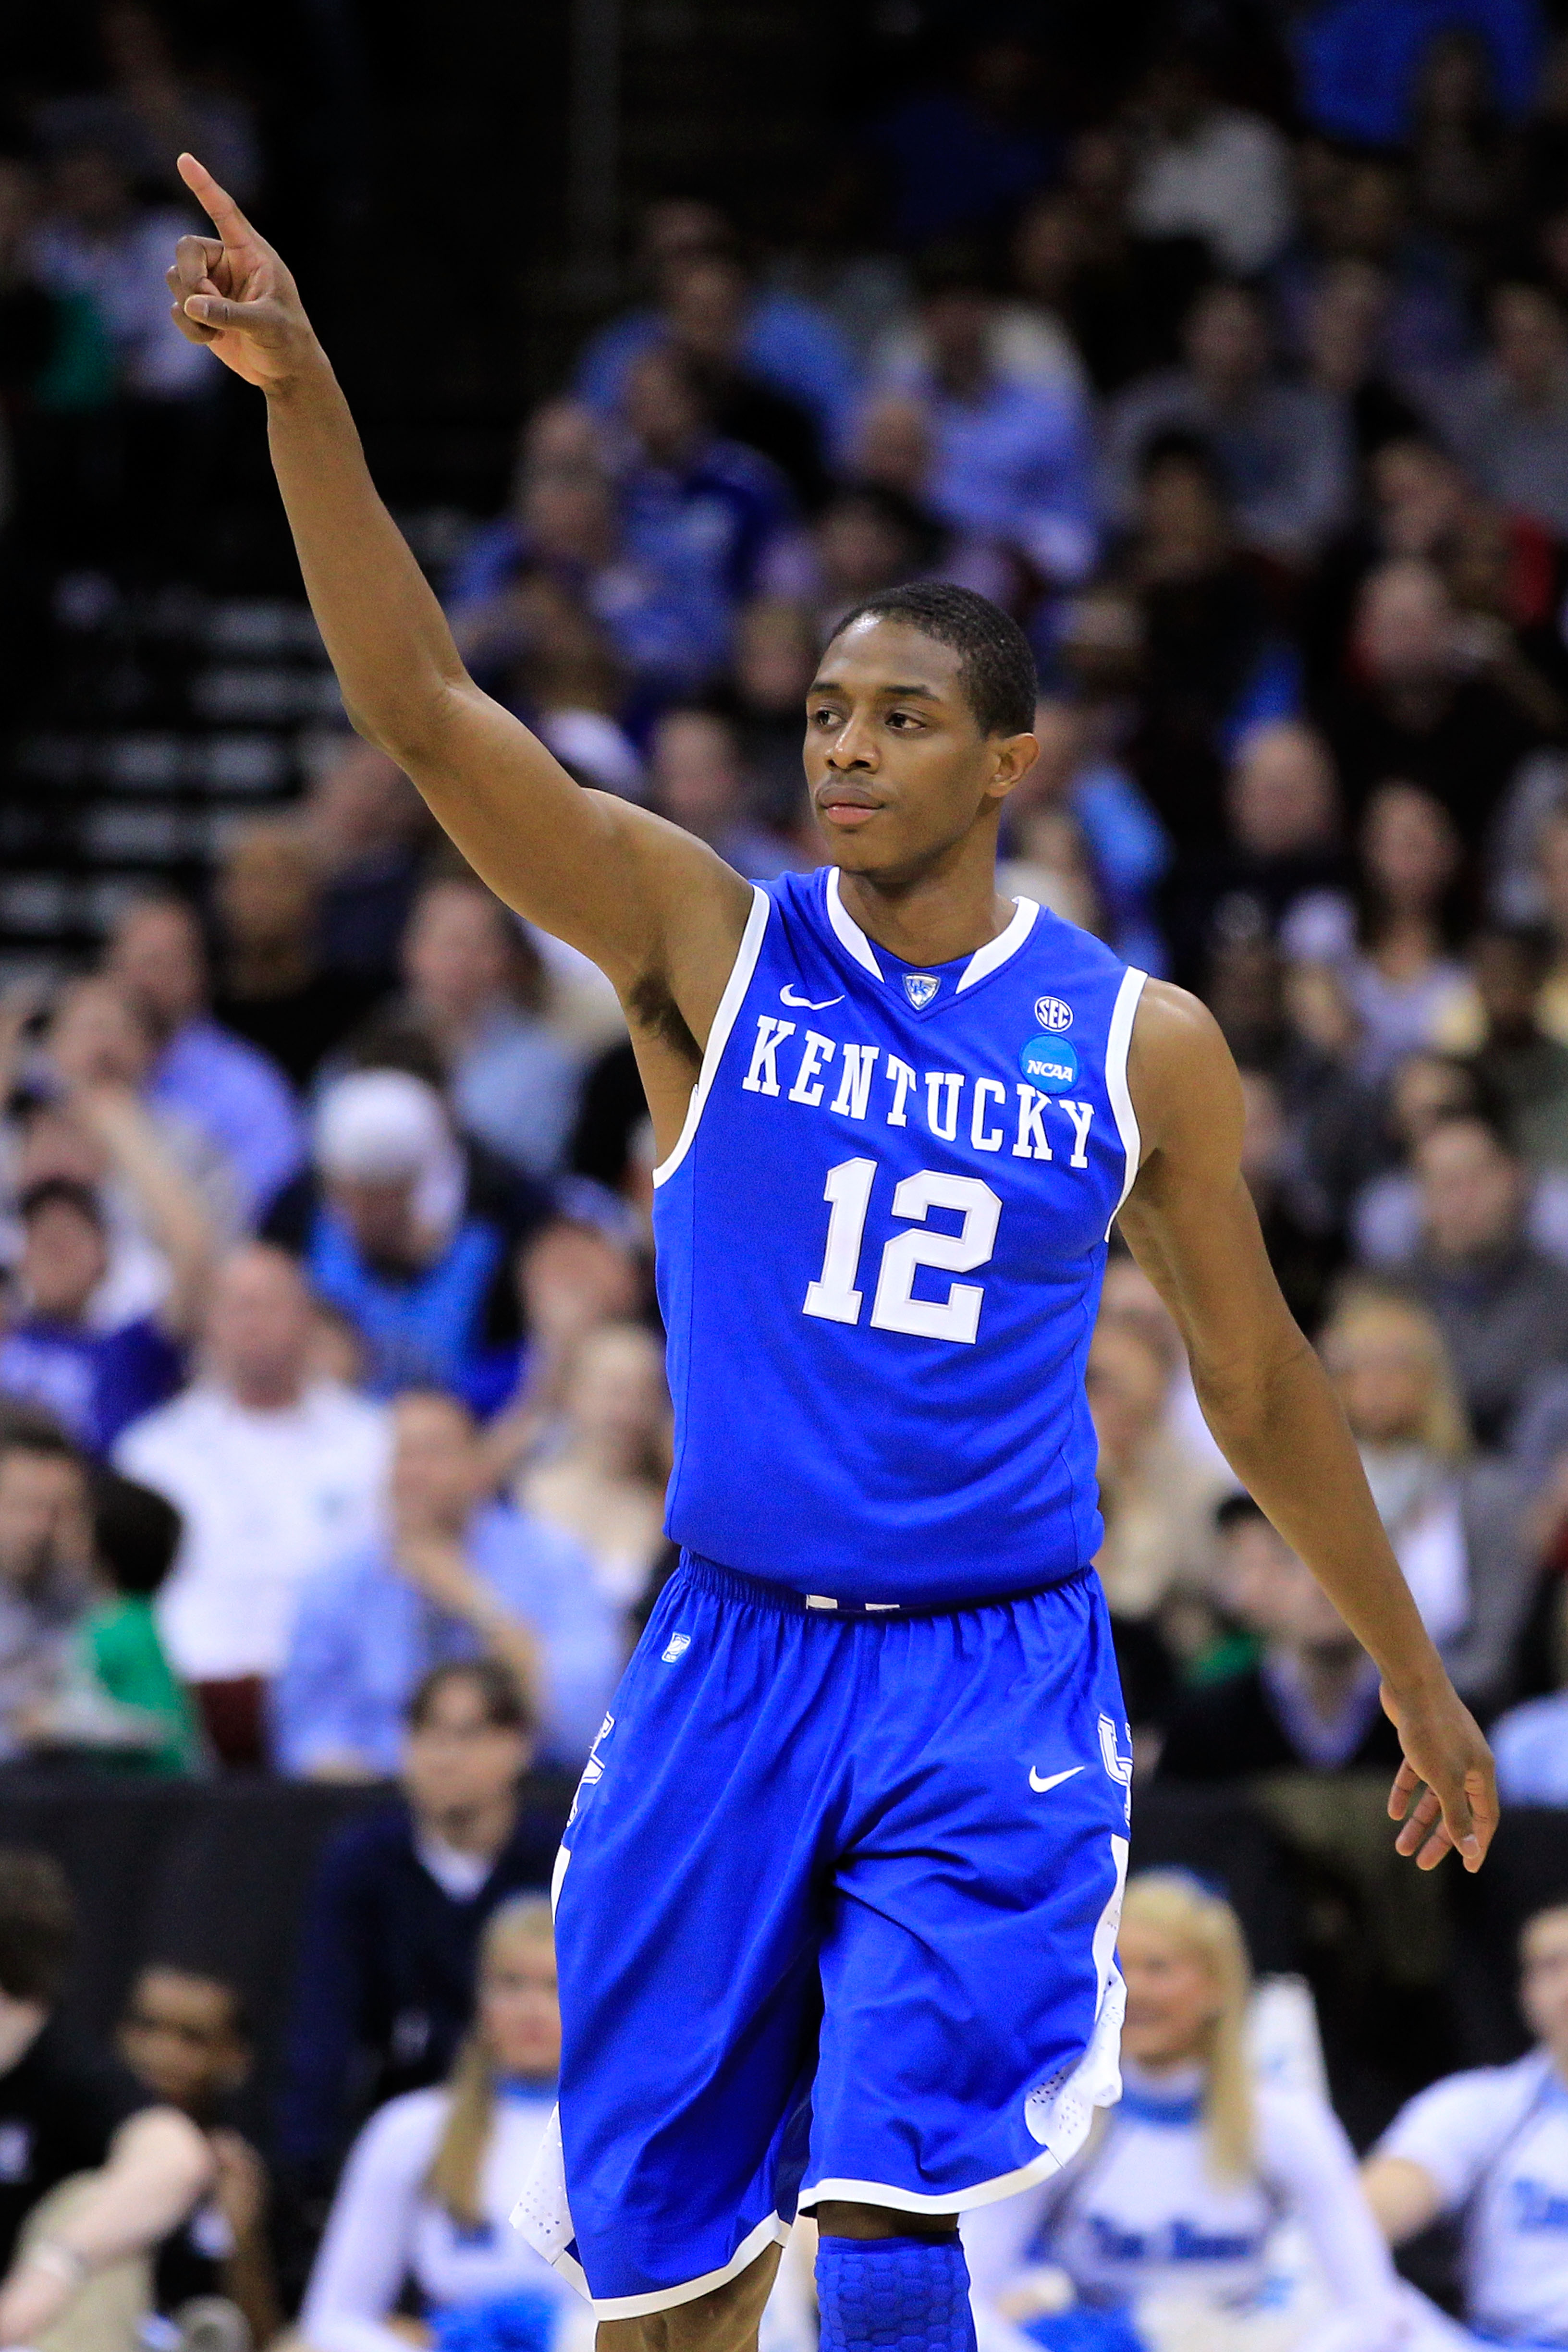 NEWARK, NJ - MARCH 27:  Brandon Knight #12 of the Kentucky Wildcats celebrates after a play against the North Carolina Tar Heels during the second half of the east regional final of the 2011 NCAA men's basketball tournament at Prudential Center on March 2